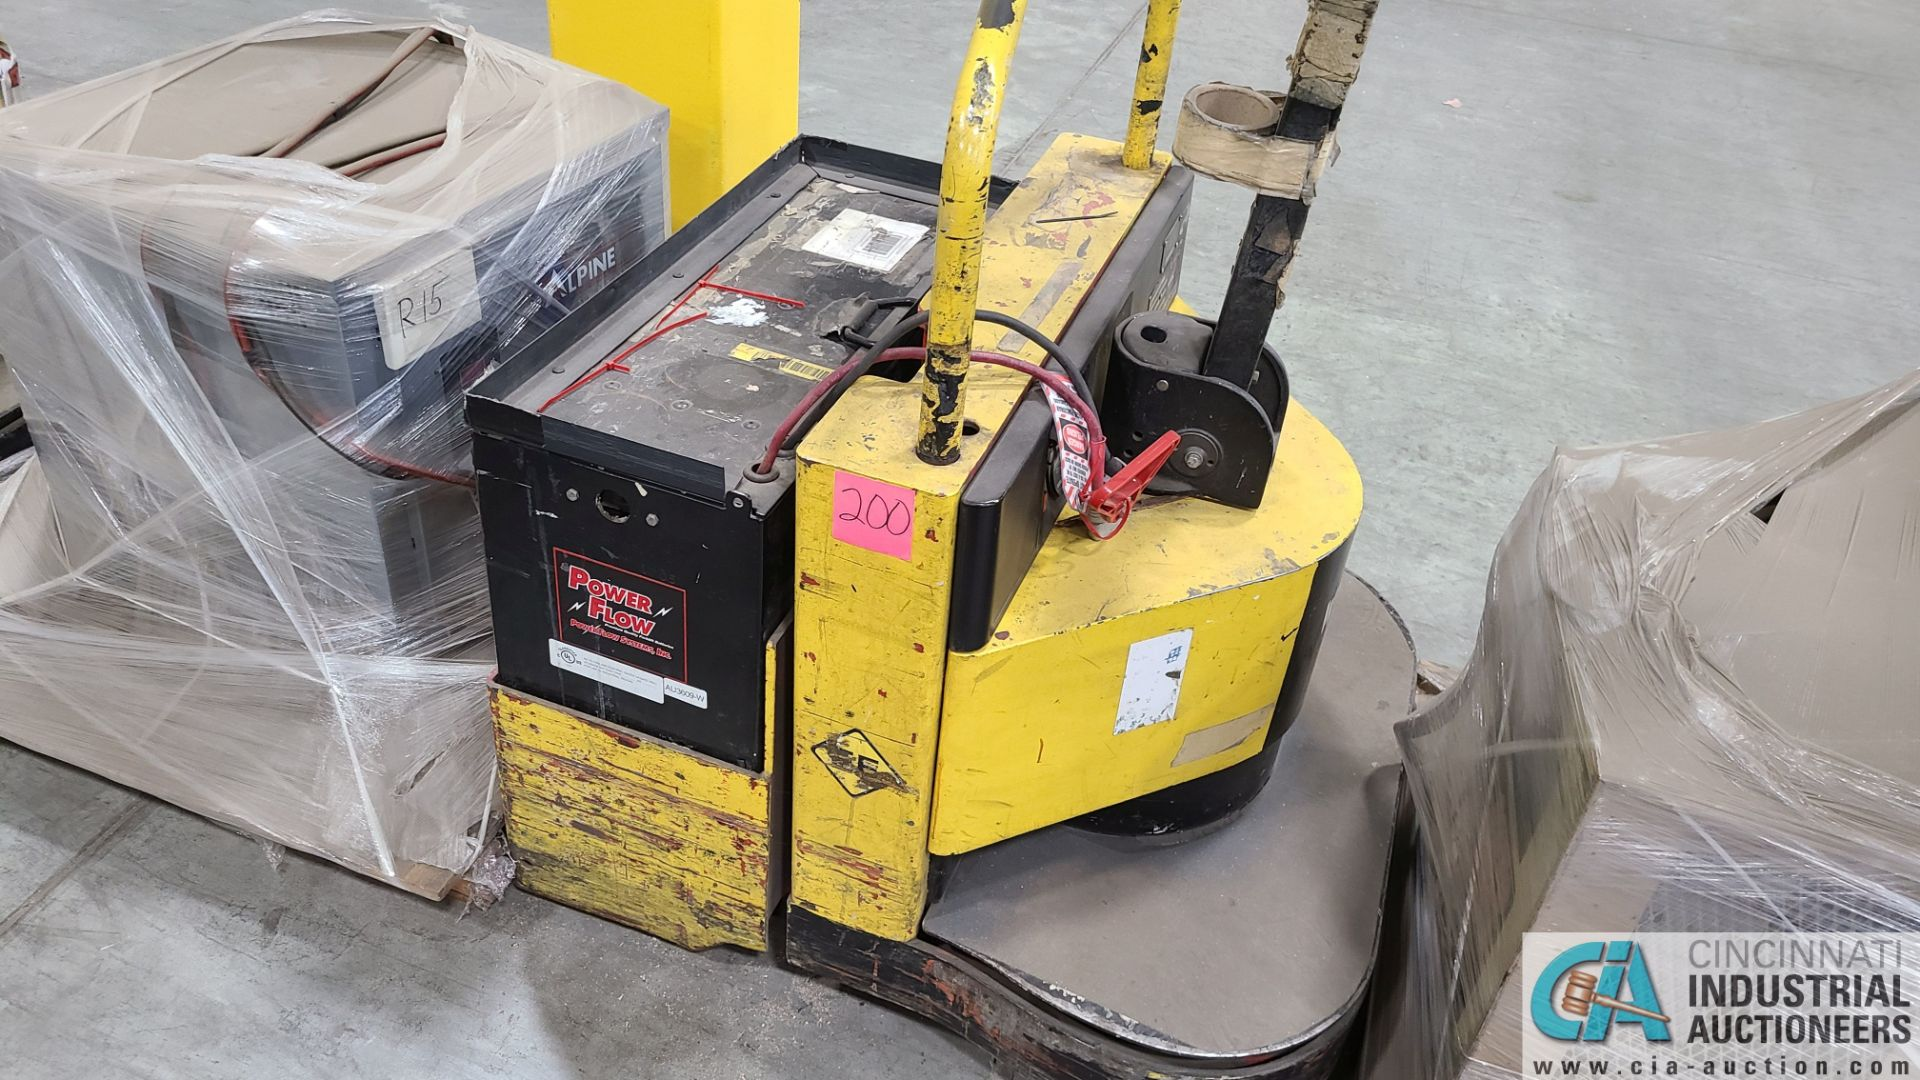 PRIME MODEL HMX65 ELECTRIC PALLET TRUCK; S/N HMX6528191001, W/ BATTERY, 7929 HOURS (2570 ORCHARD - Image 3 of 4